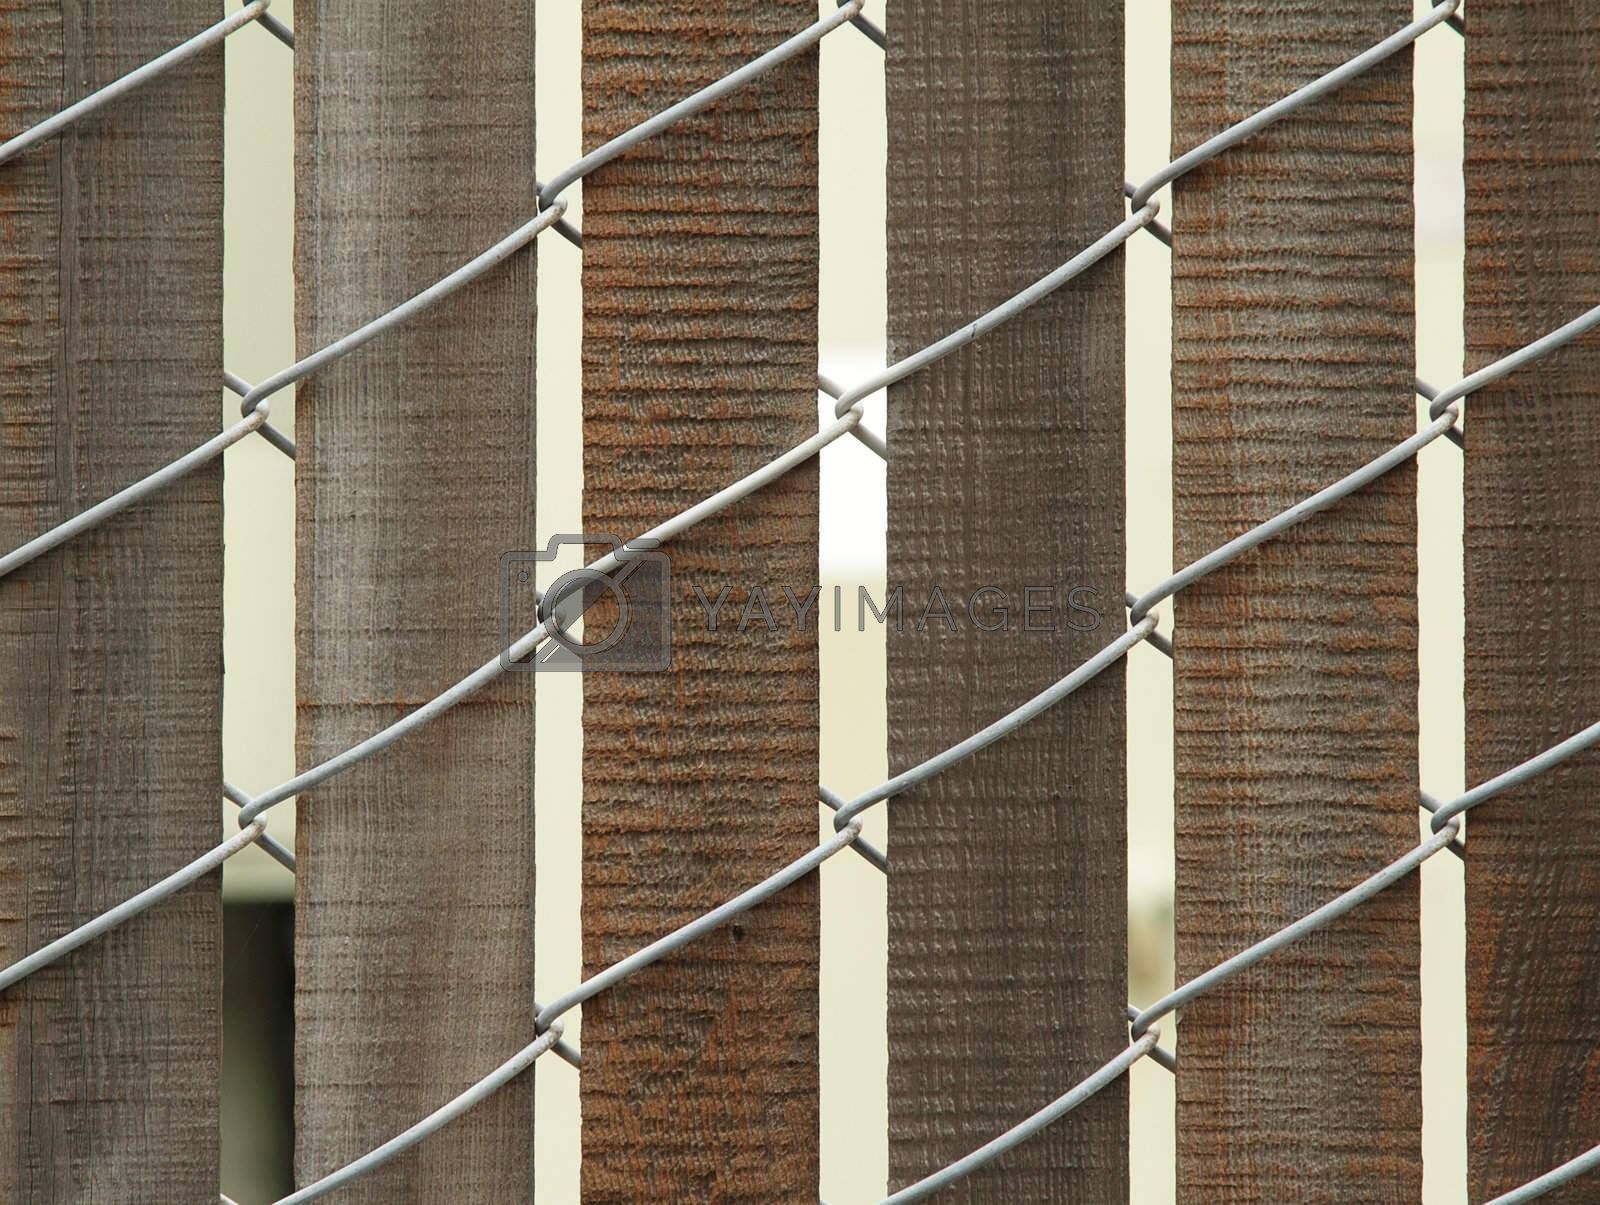 Closeup photo of wooden fence with wire